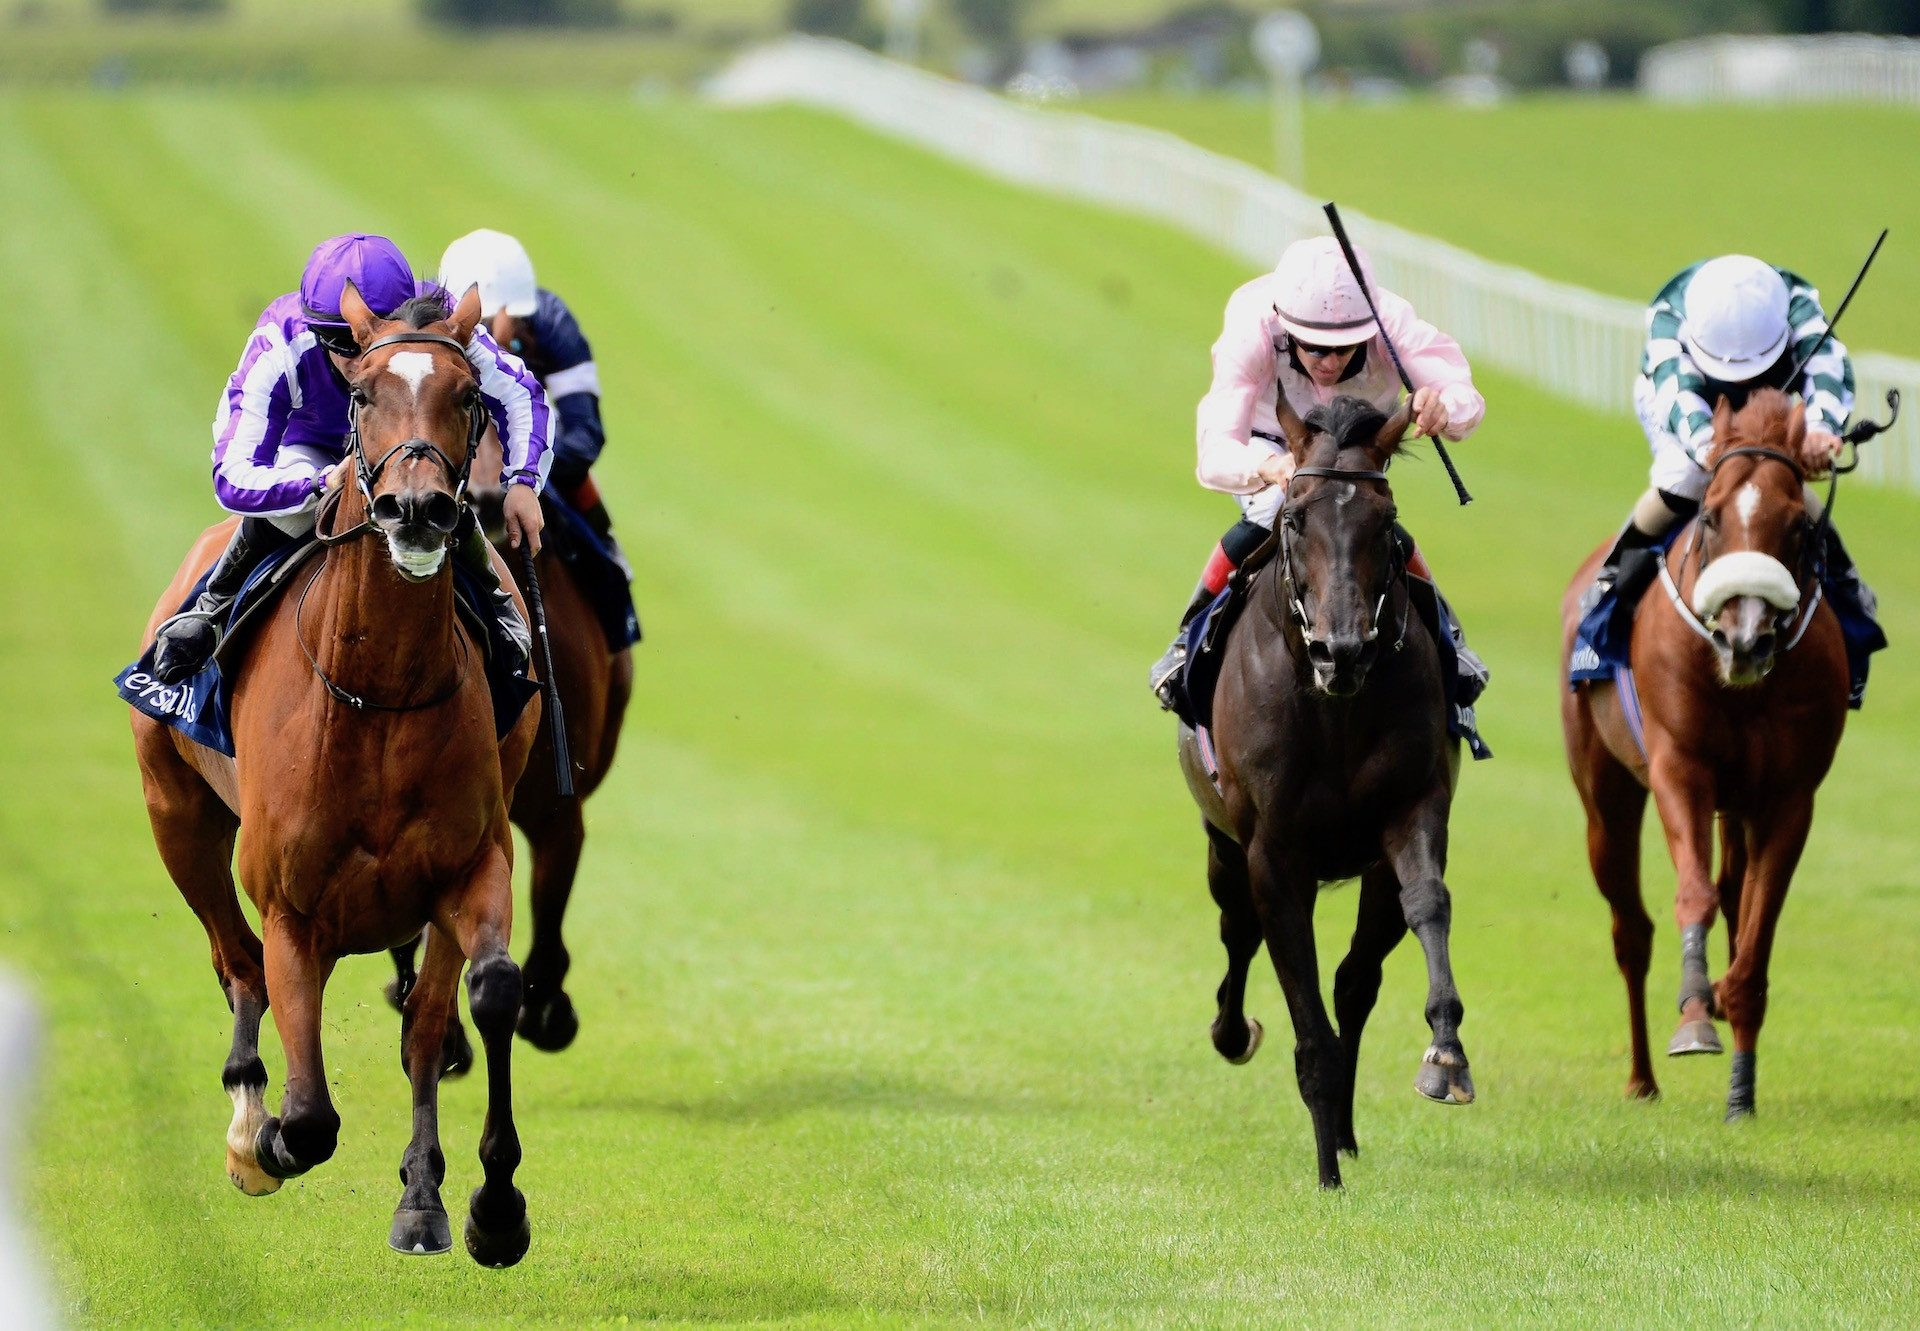 Magical (Galileo) Wins The 2020 G1 Tattersalls Gold Cup at the Curragh